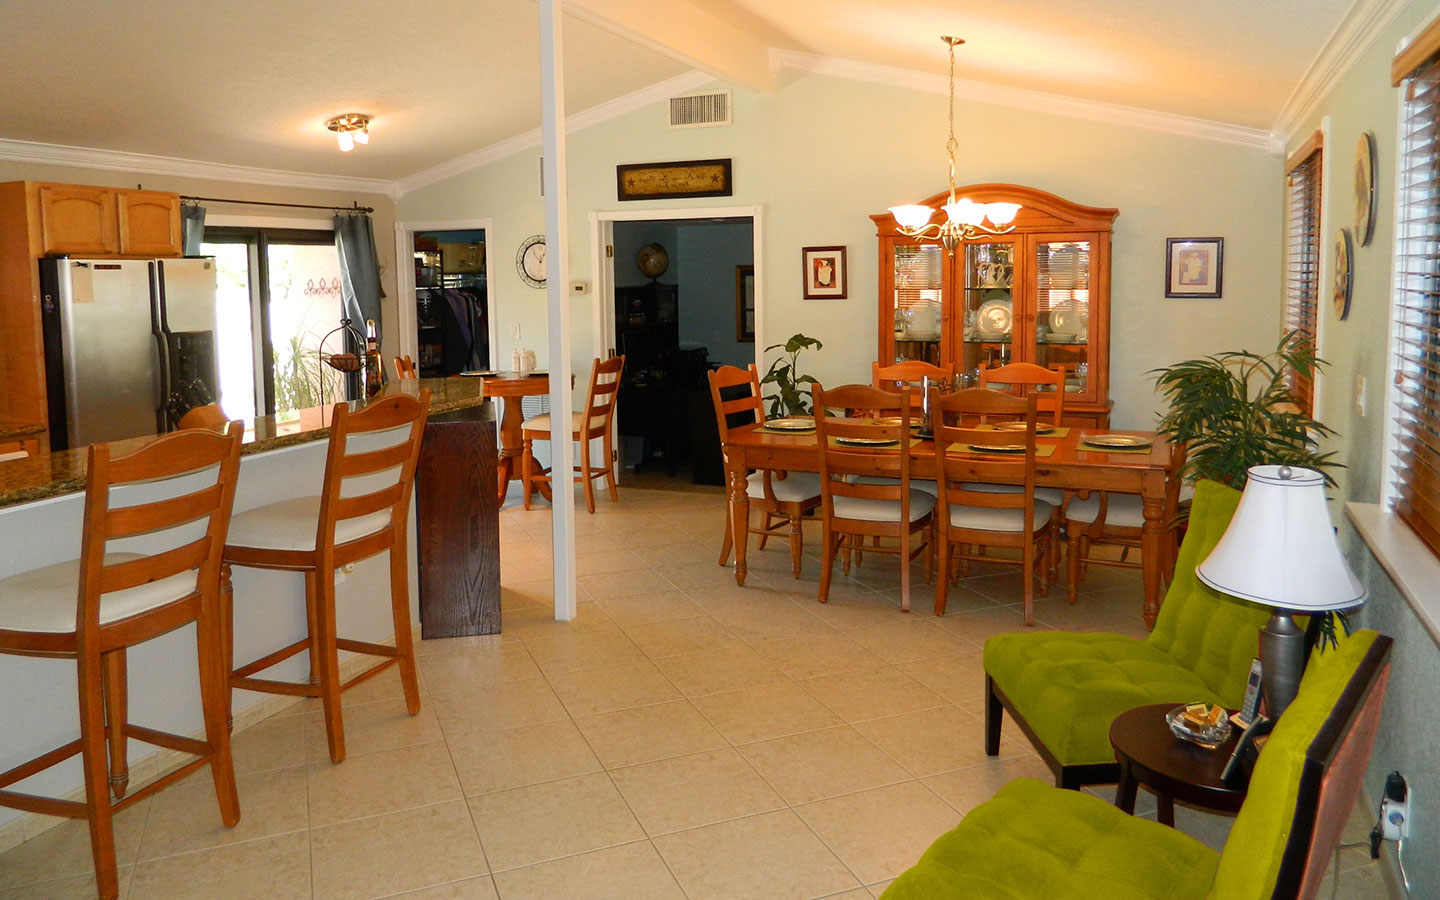 Picture of a dining room with attached kitchen